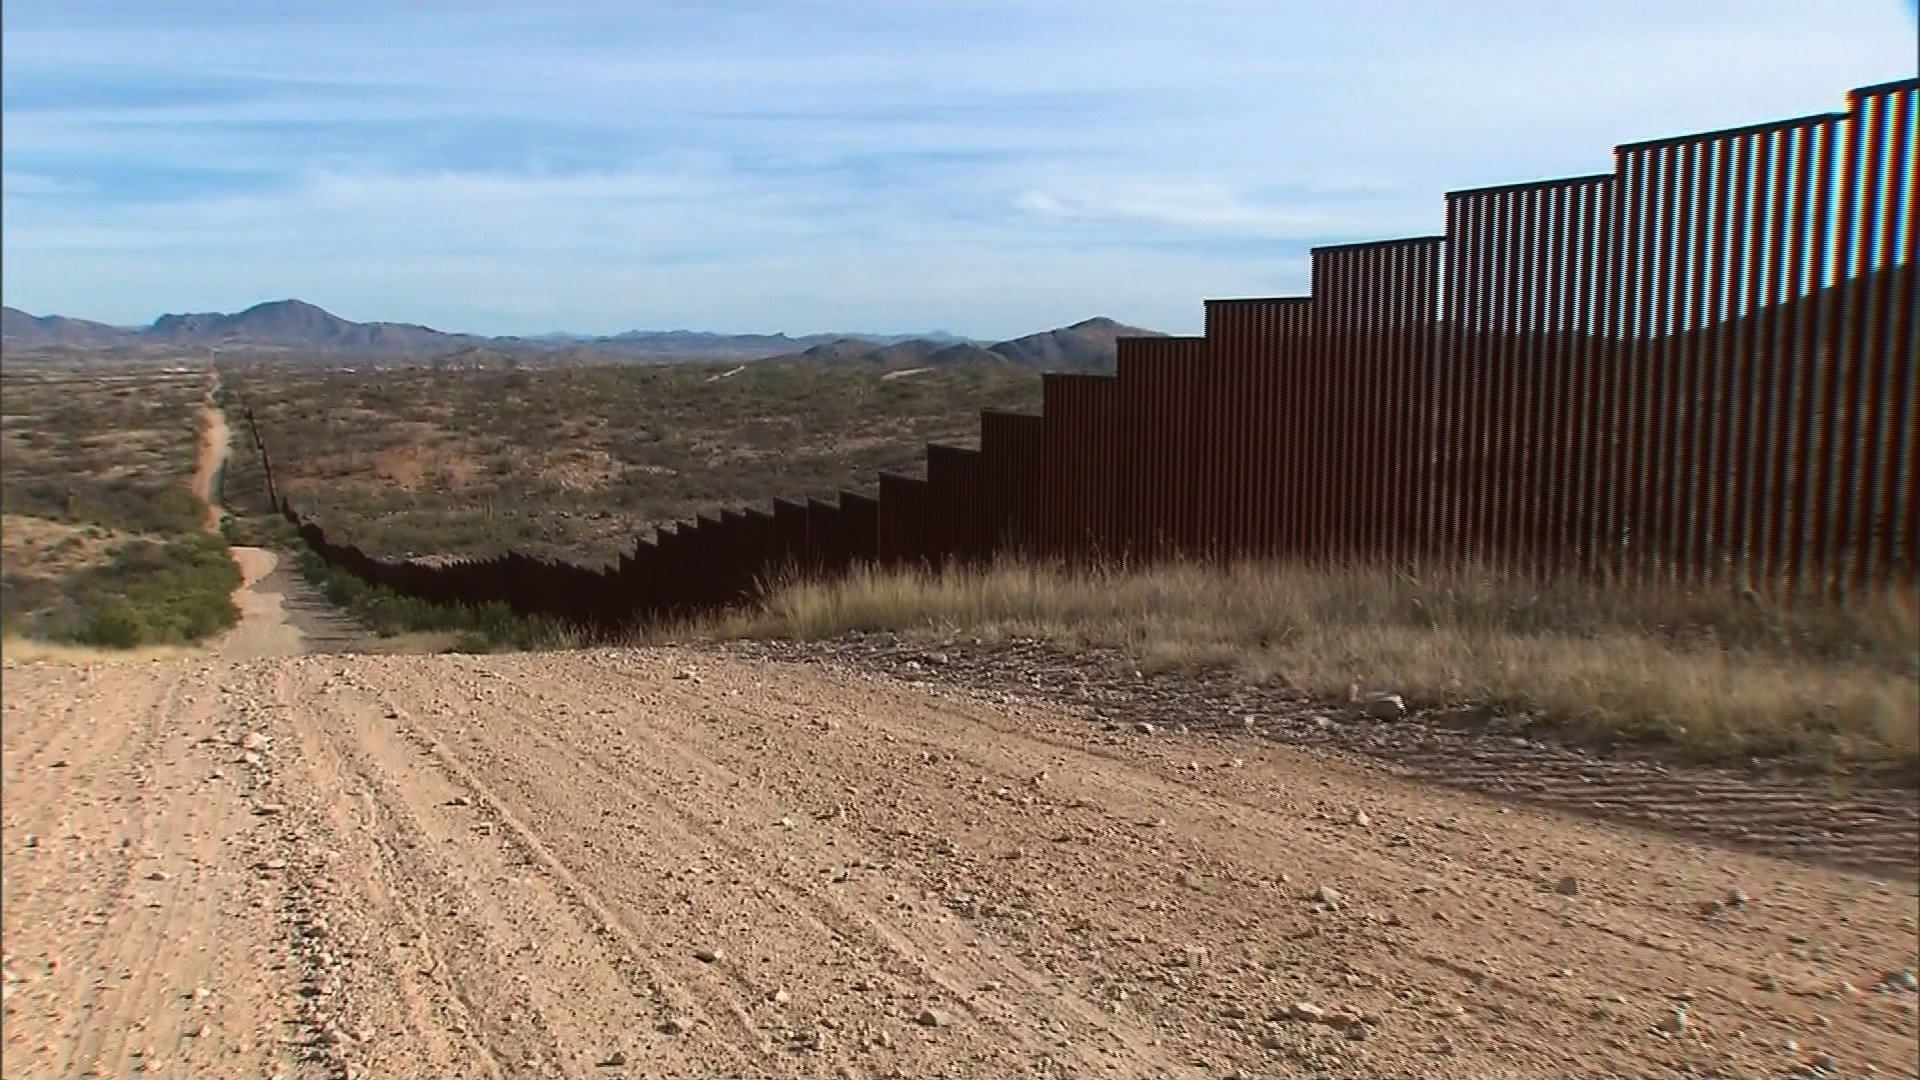 Trump stops in Arizona border town where illegal immigration plunged 82%